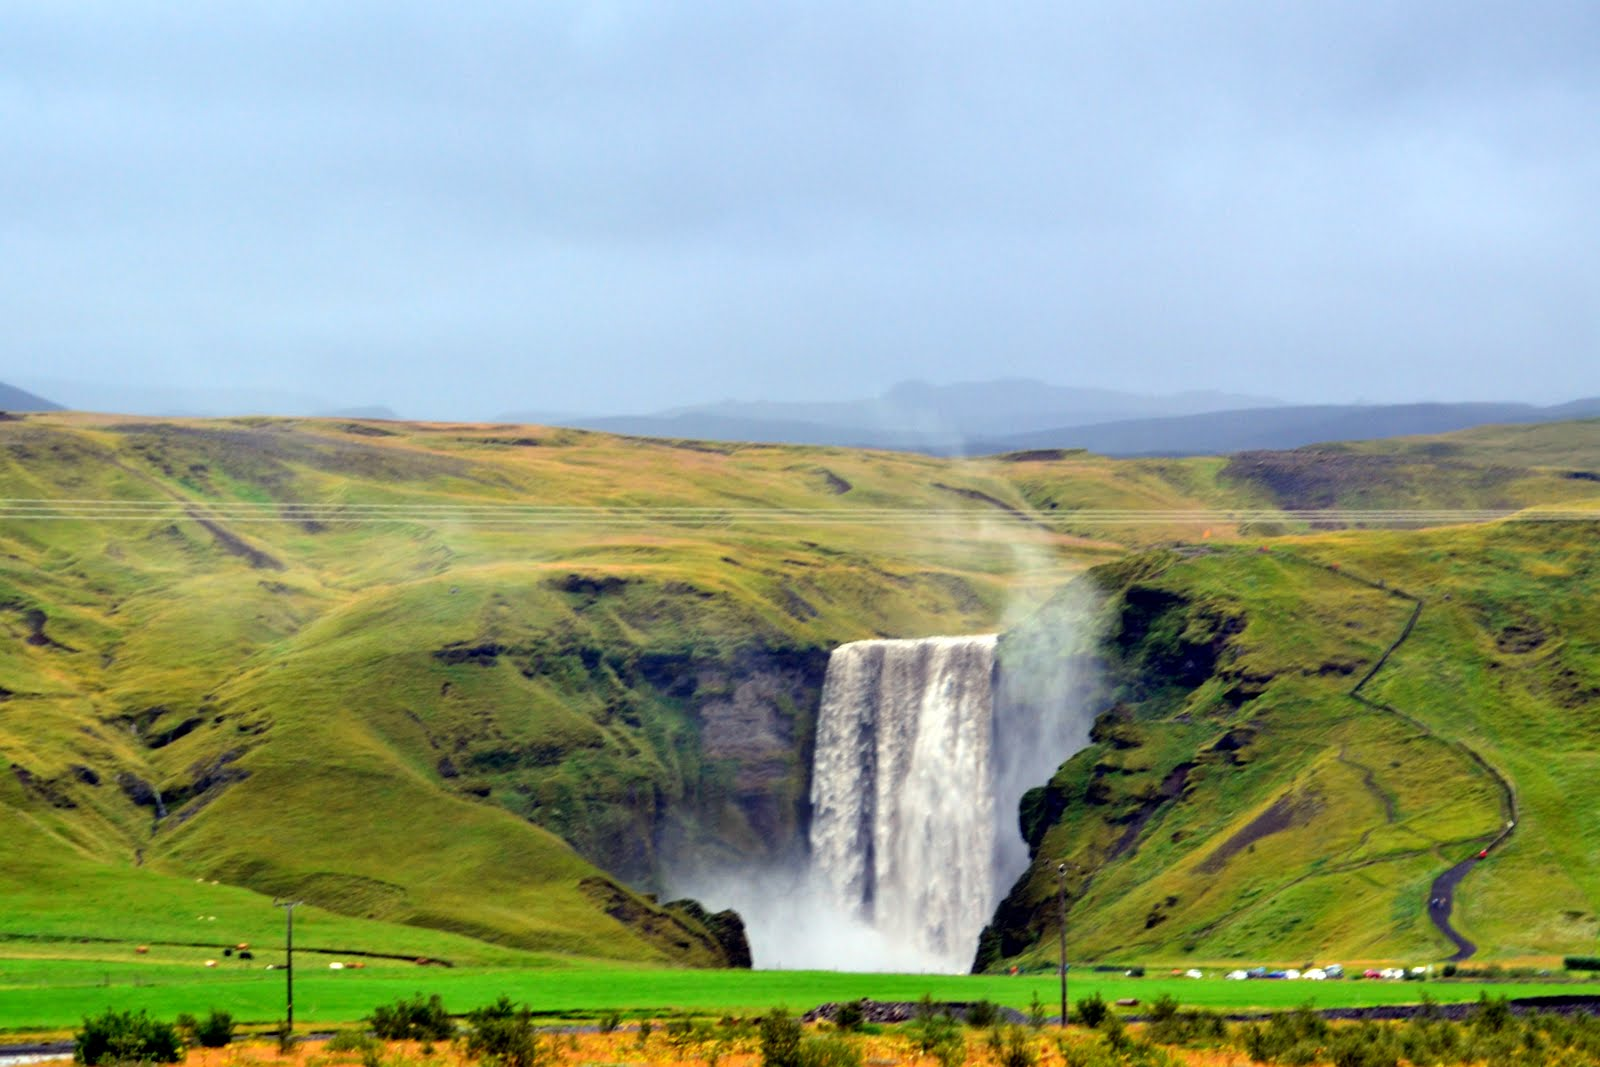 Hofn Iceland  city pictures gallery : The scenery was so beautiful that the drive went by so quickly. By the ...